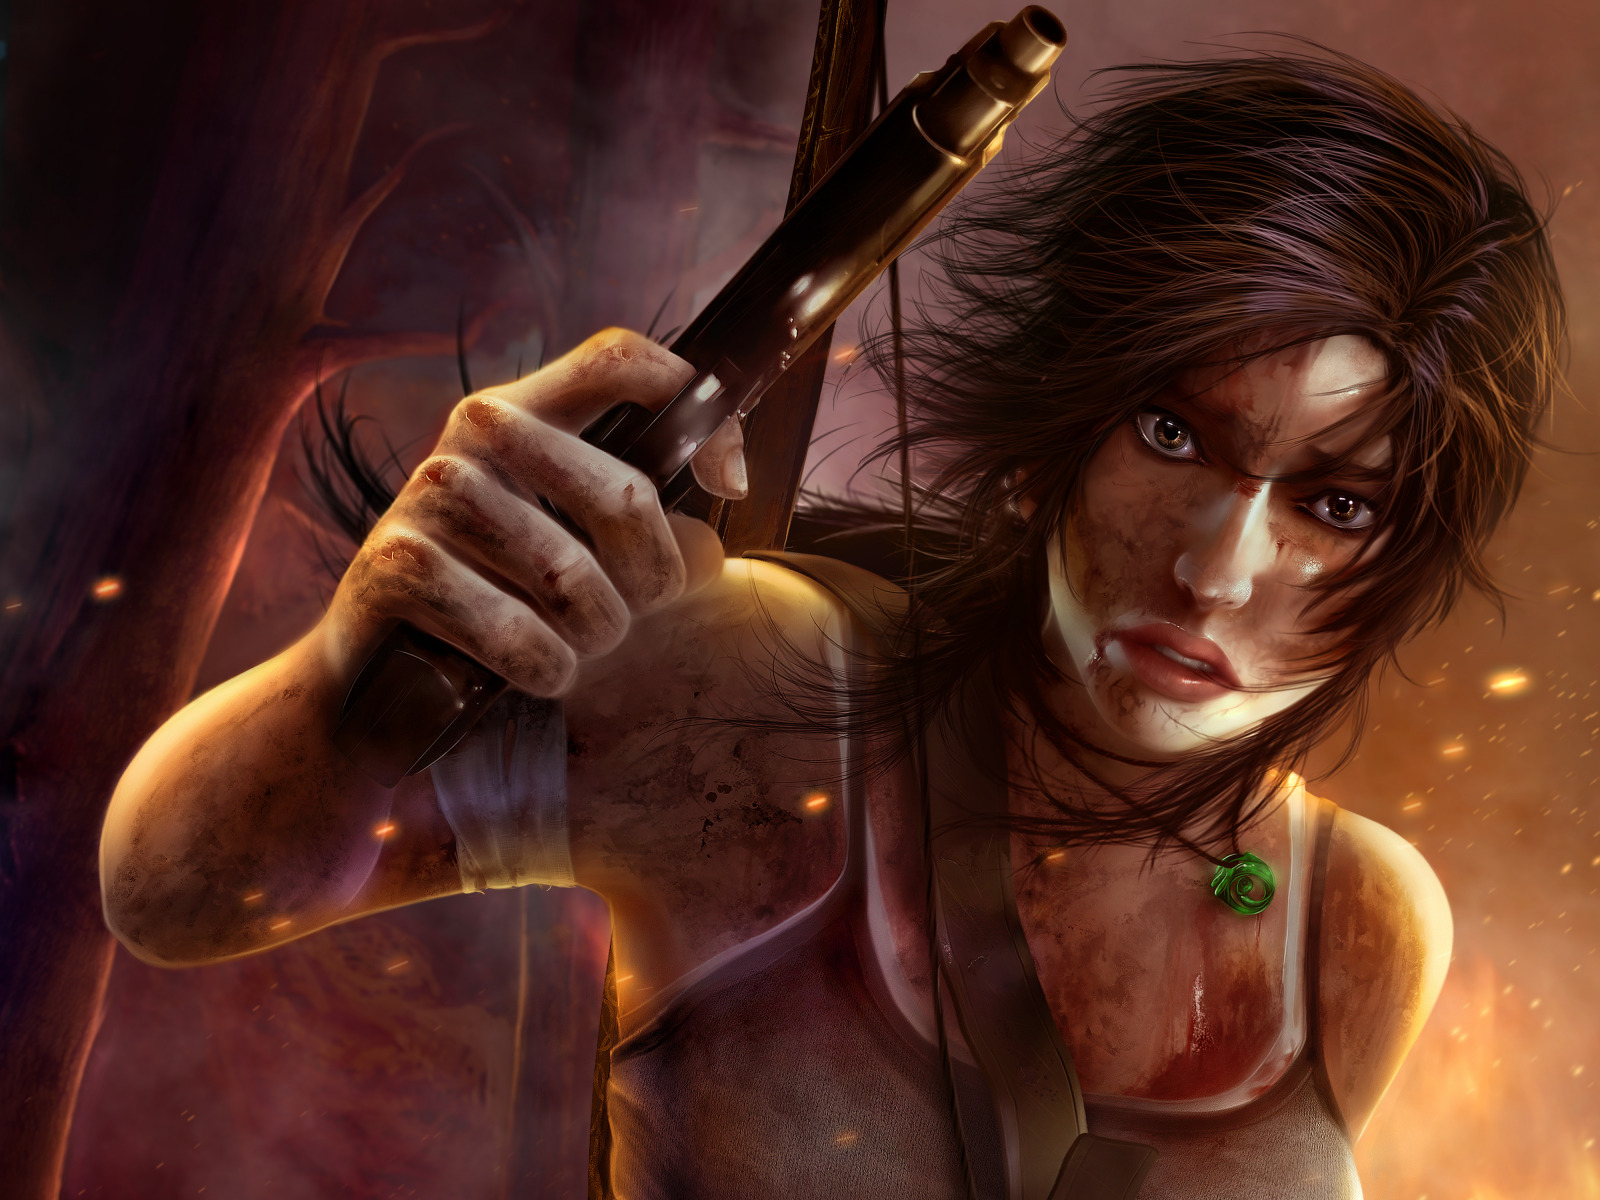 Tomb raider 6 pron anime galleries